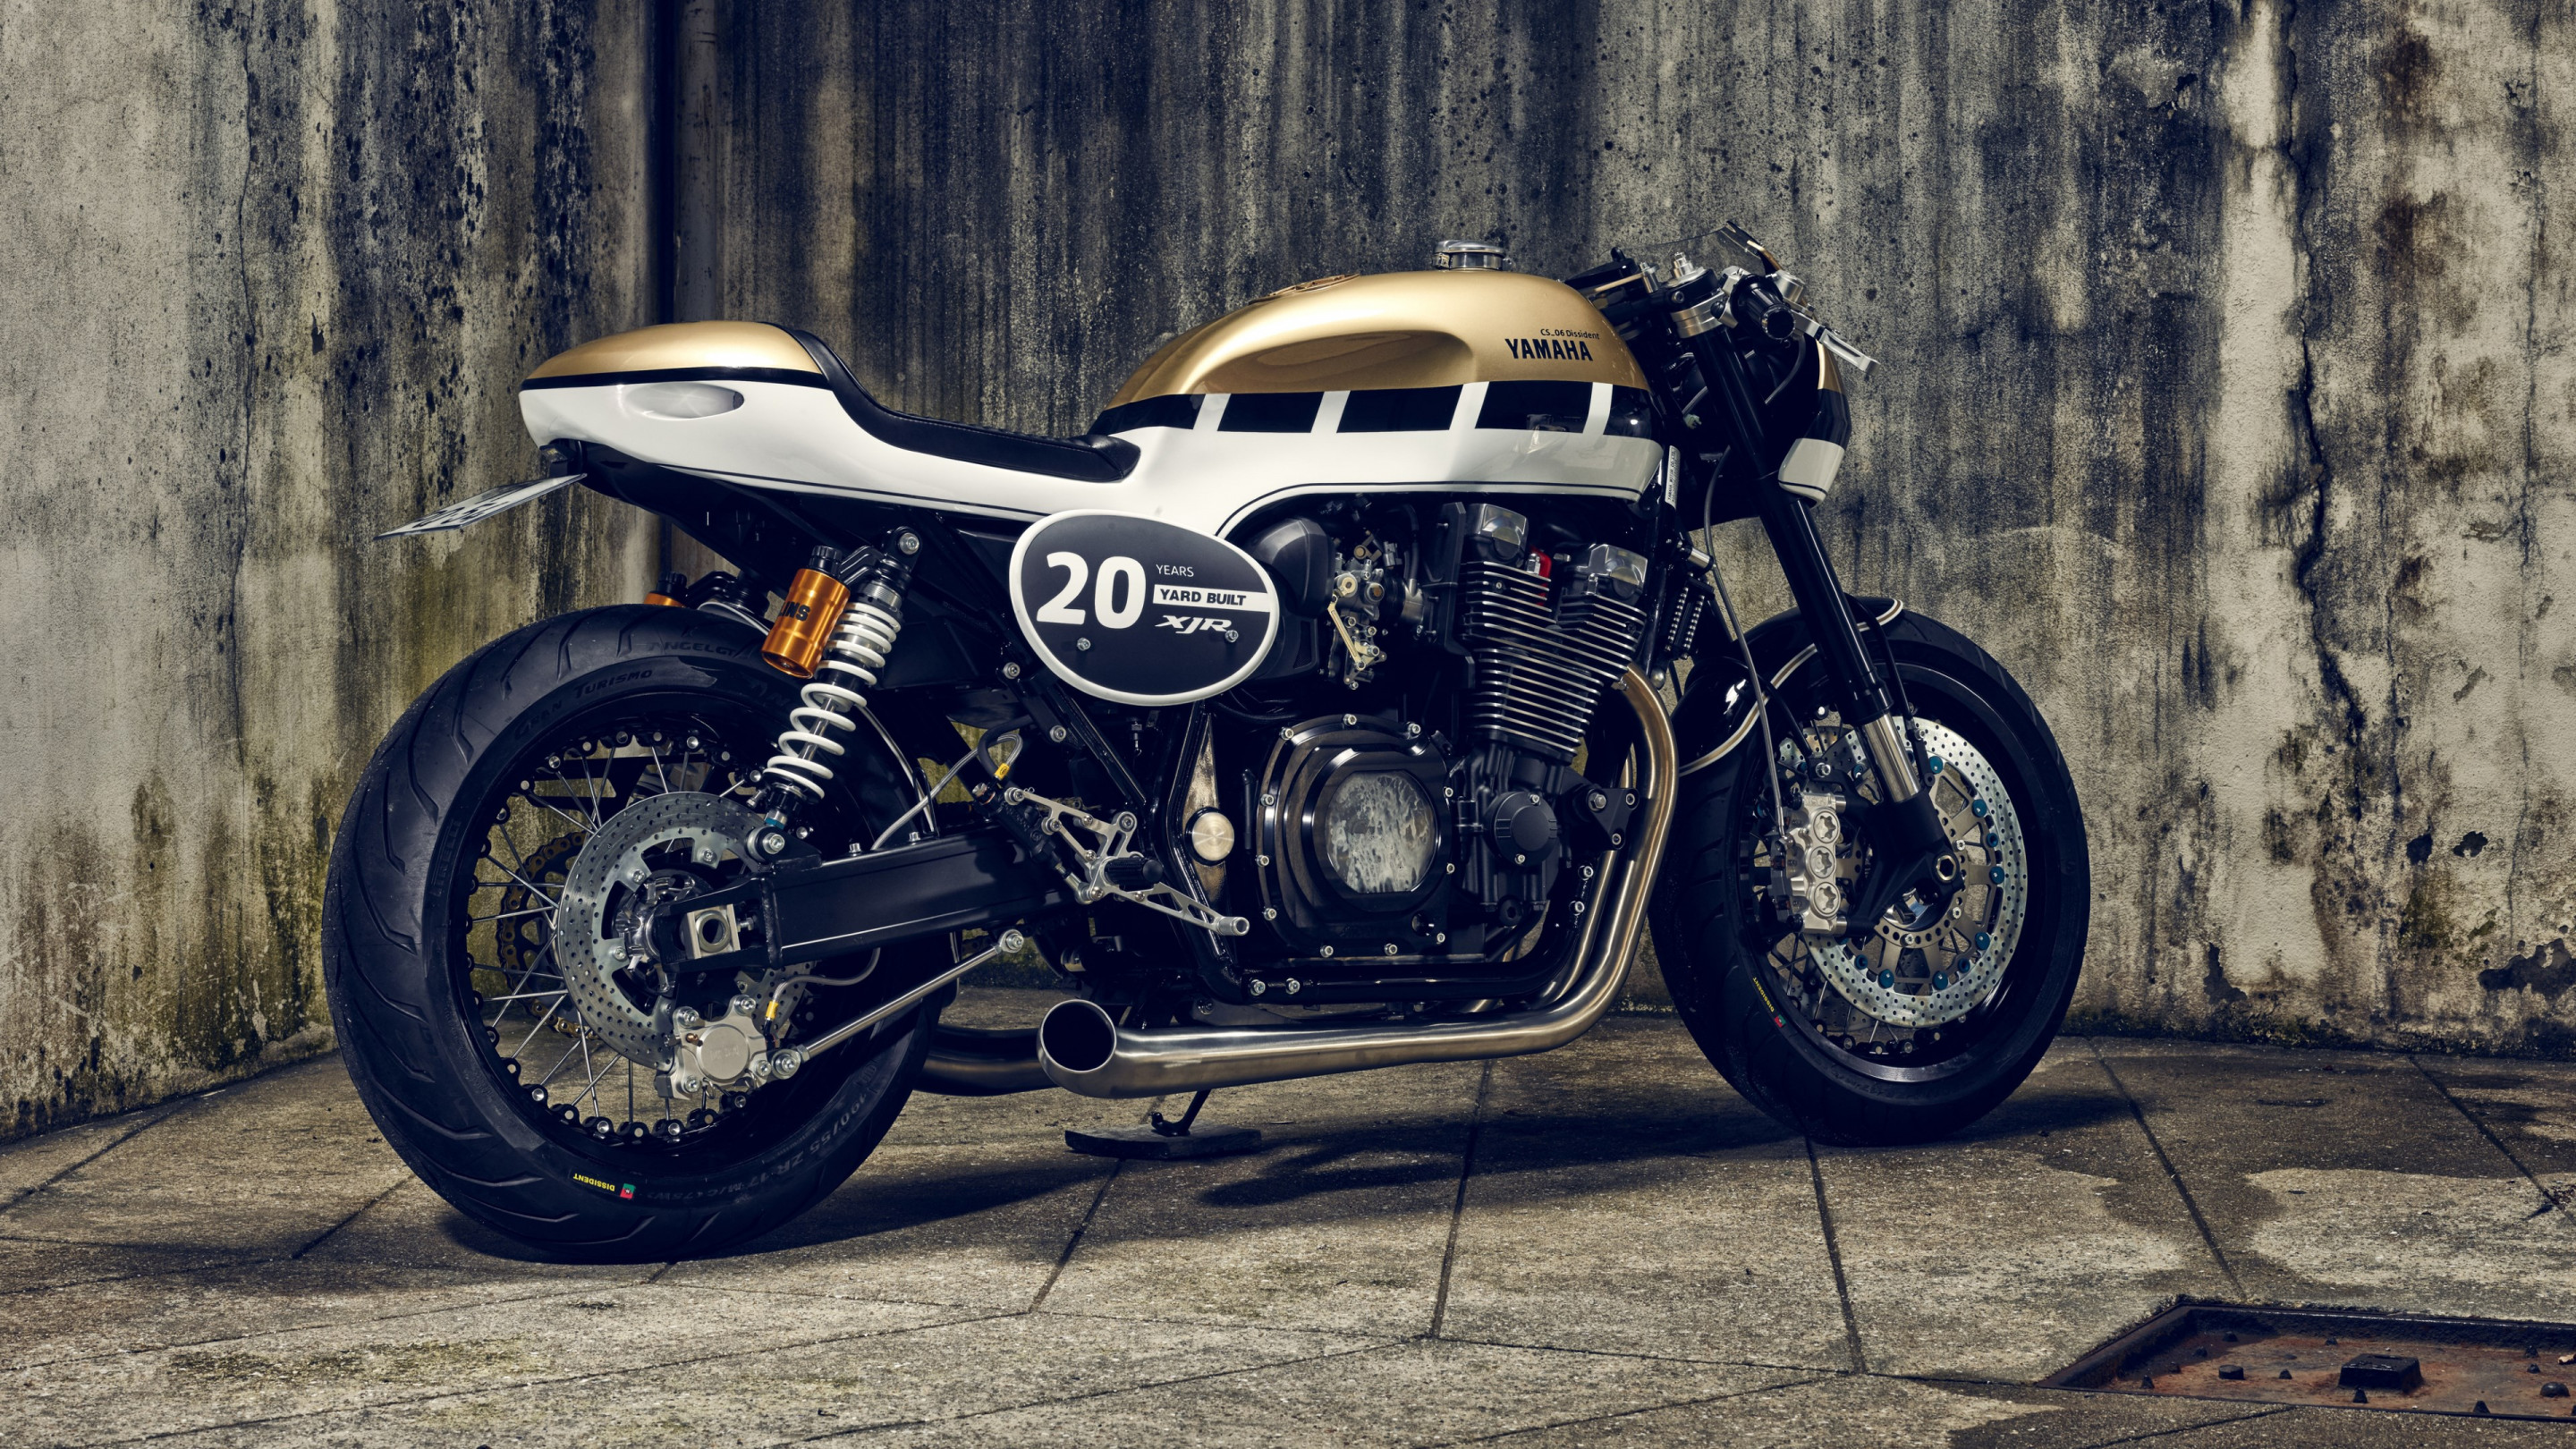 Yamaha XJR1300 wallpaper 2880x1620